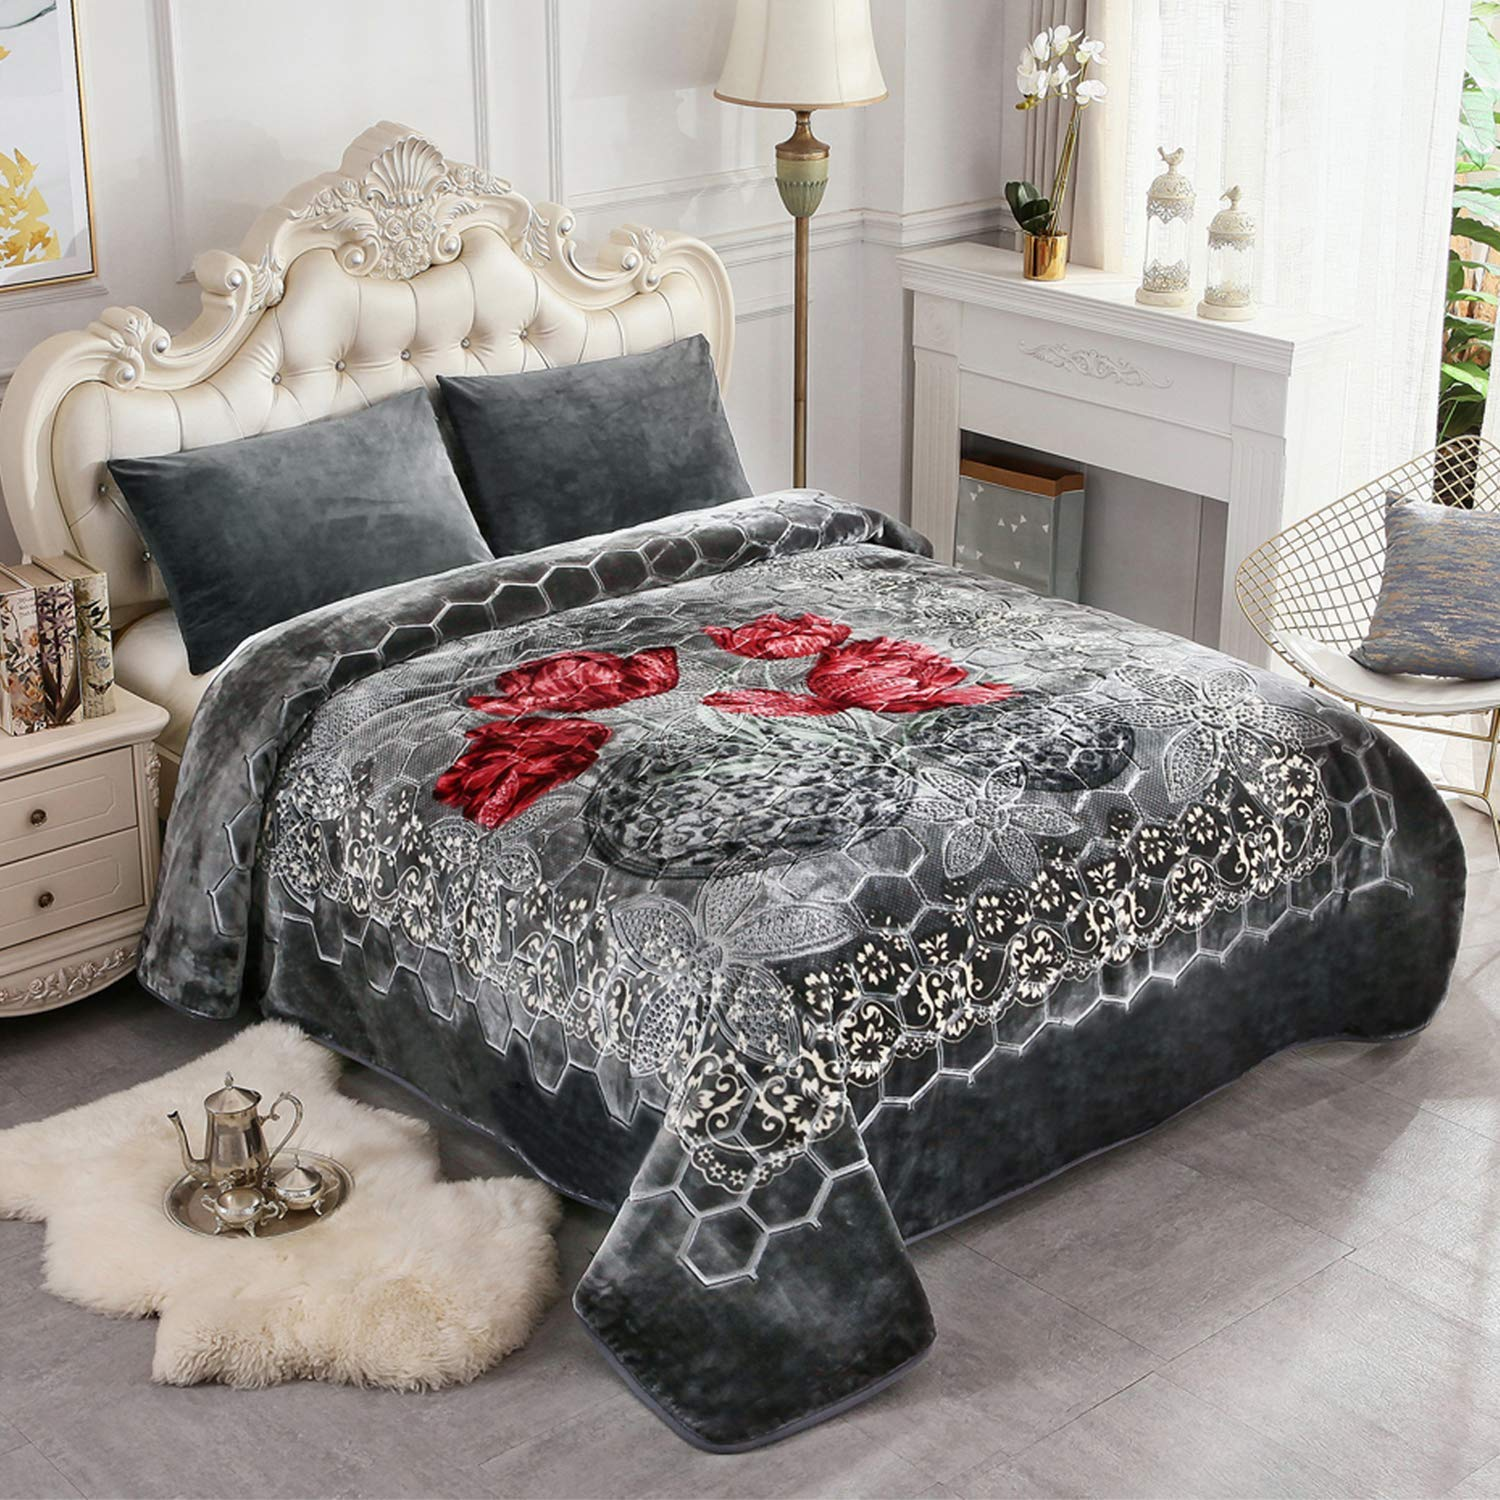 JML Fleece Blanket King Size, Heavy Korean Mink Blanket 85 X 95 Inches- 9 Lbs, Single Ply, Soft and Warm, Thick Raschel Printed Mink Blanket for Autumn,Winter,Bed,Home,Gifts, GreyFlower